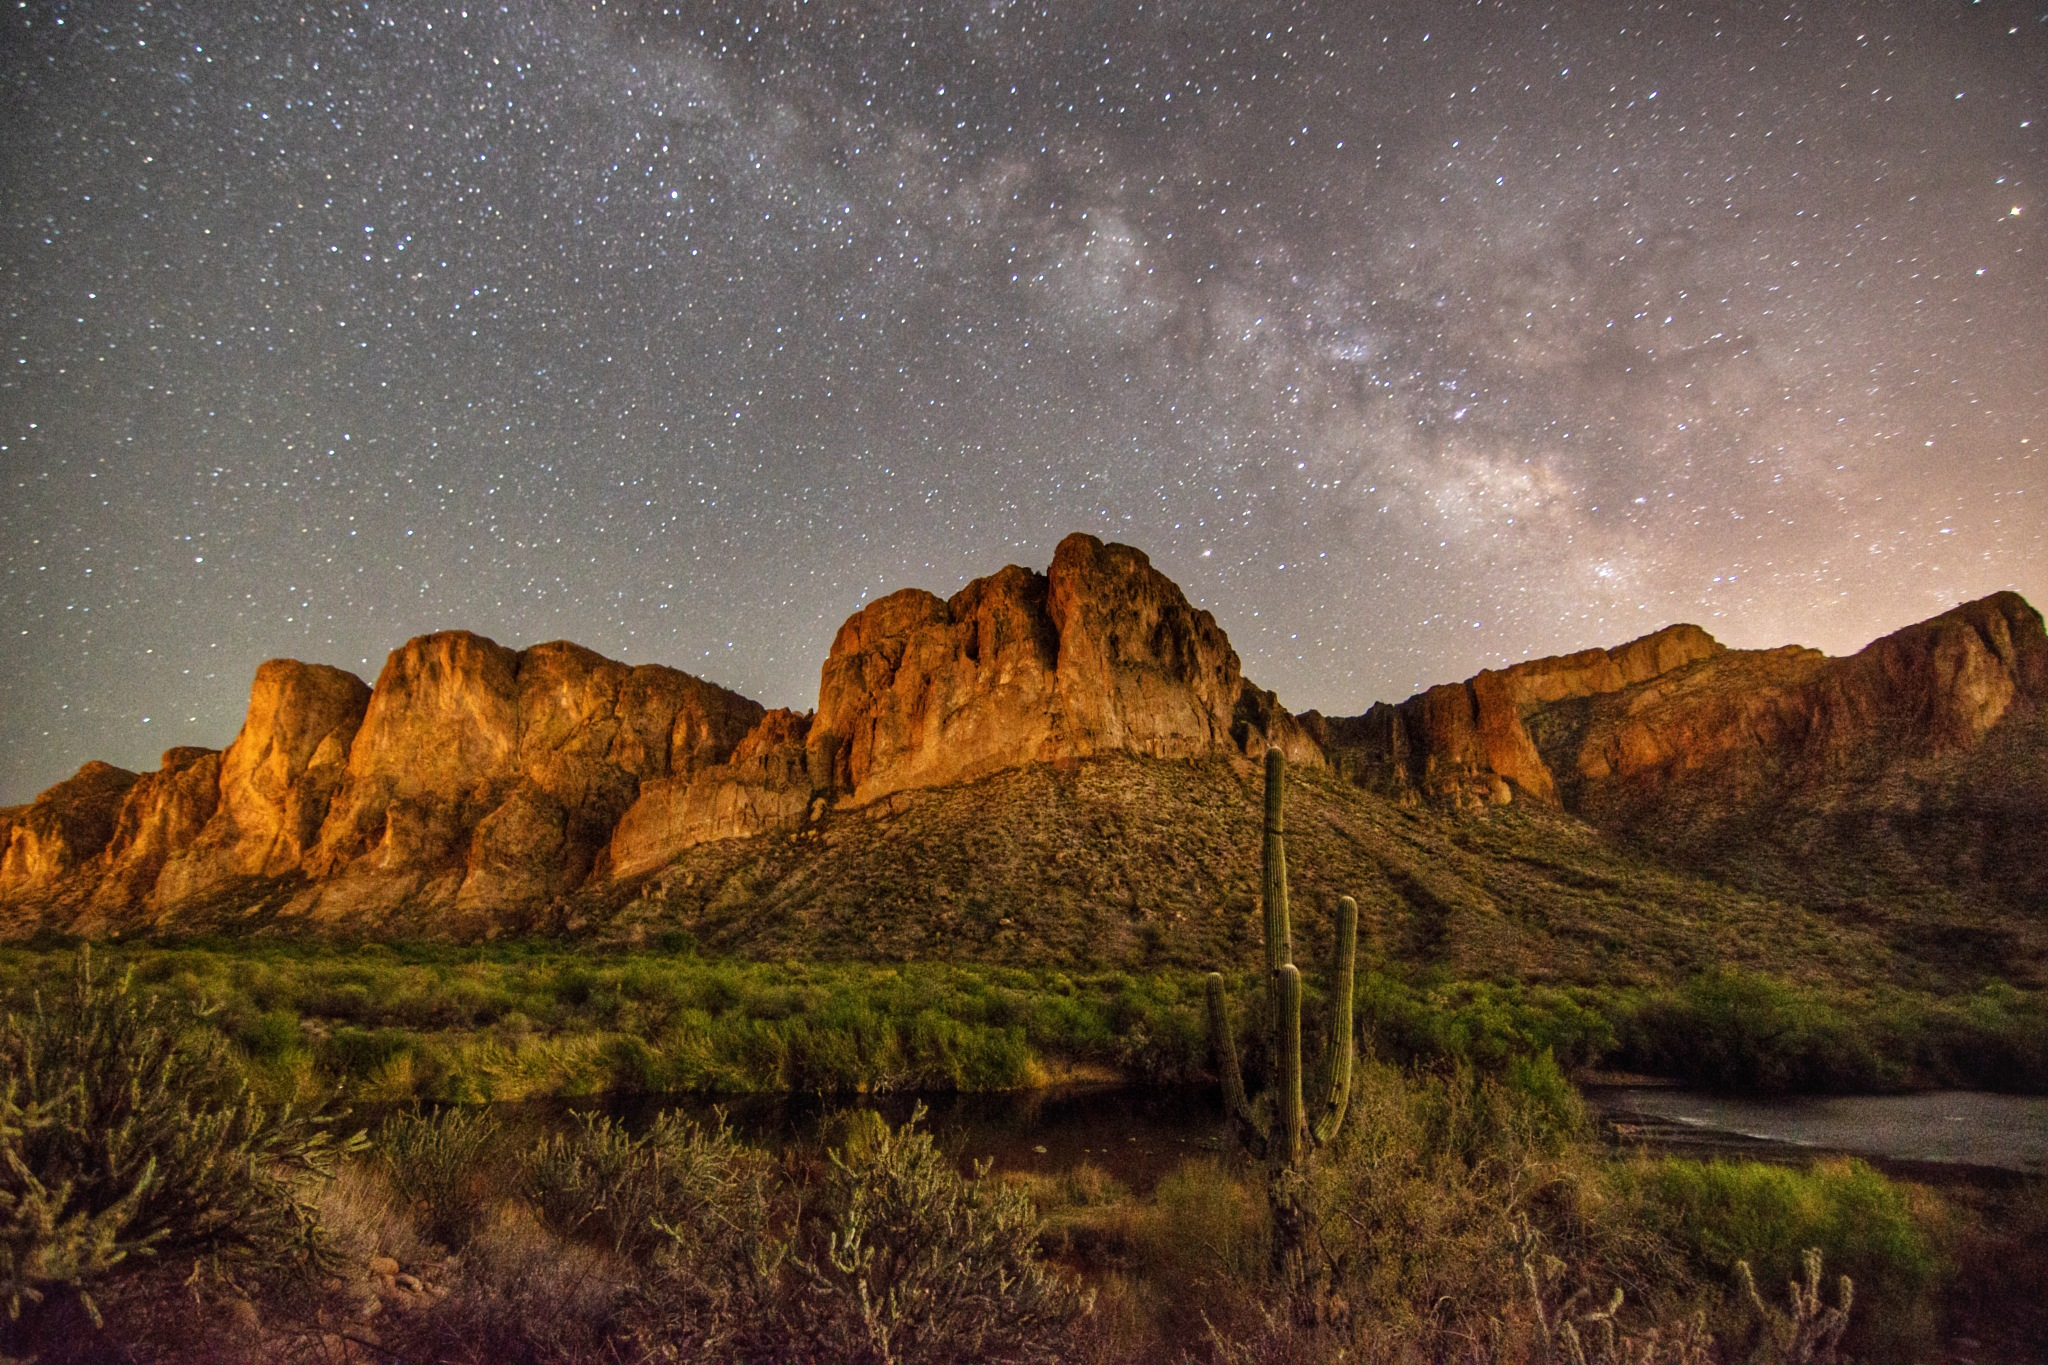 Milky Way over the Bulldog Cliffs - Lower Salt River by Andy Dilling